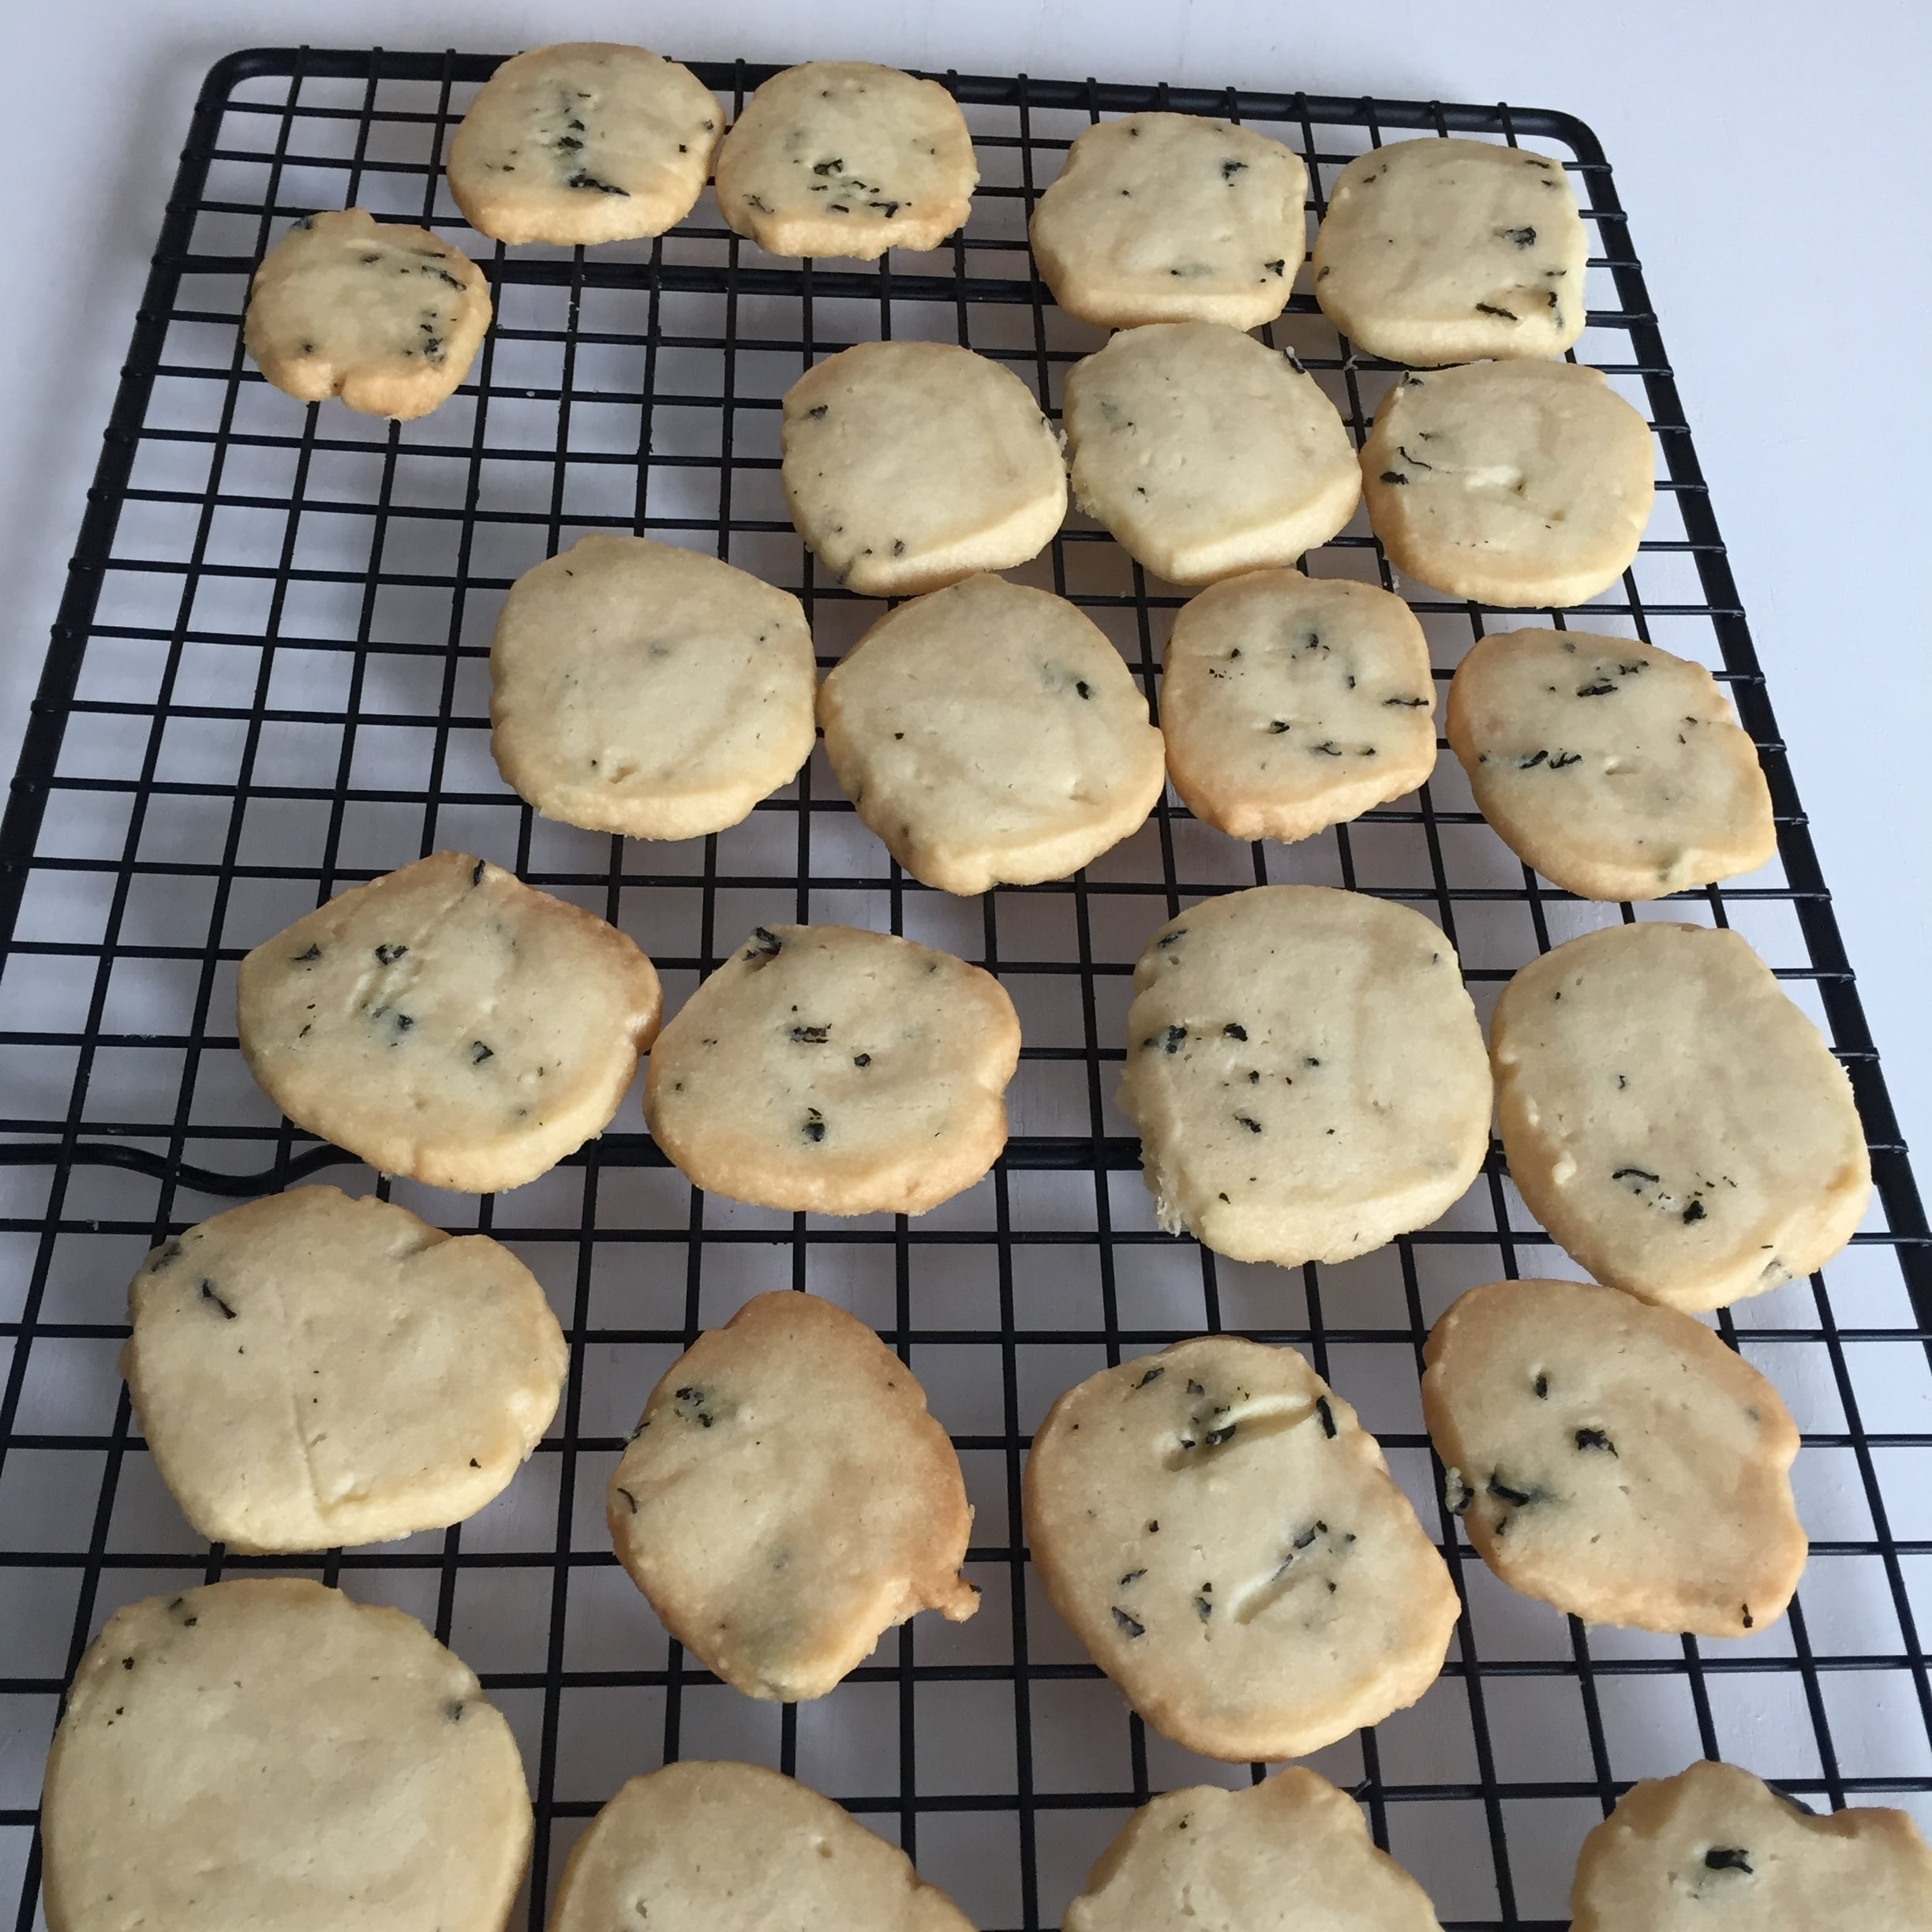 Fresh out-of-the-oven Creme of Earl Grey Cookies.